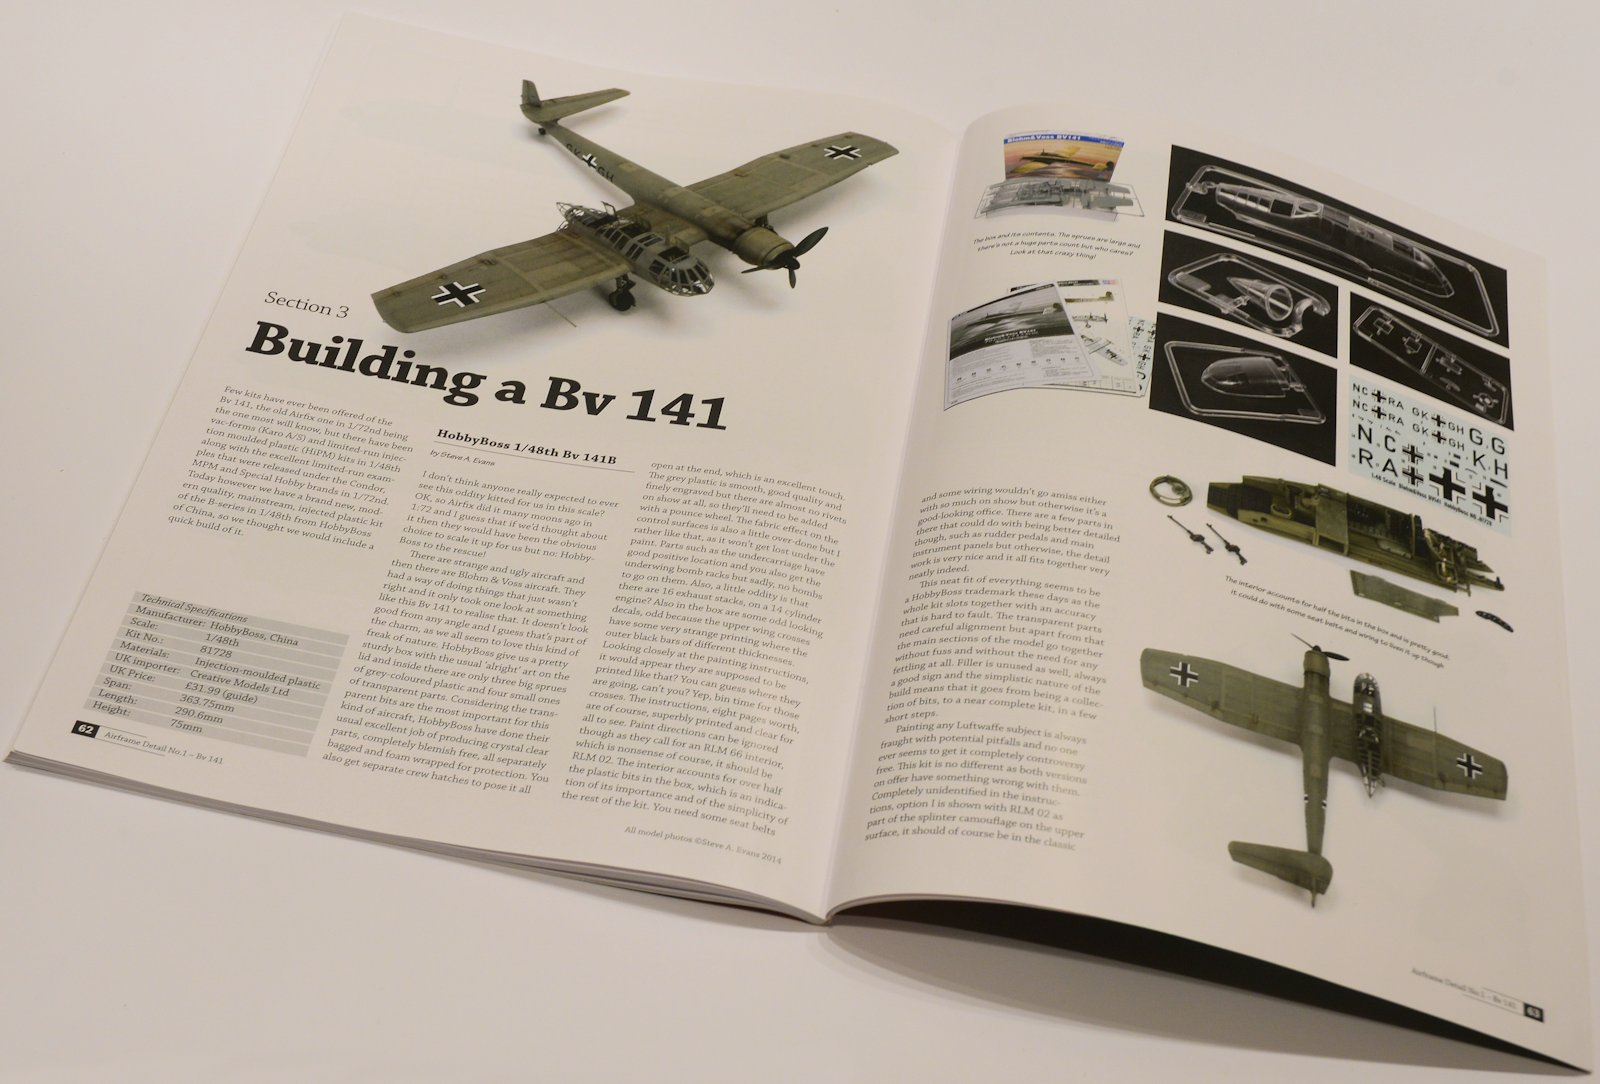 The Modelling News In Review Airframe Detail No1 Blohm Aircraft Wiring Books Lastly We Round Of This Title By A Collection Rather Thin On Ground Model Kits And Has Been Featured